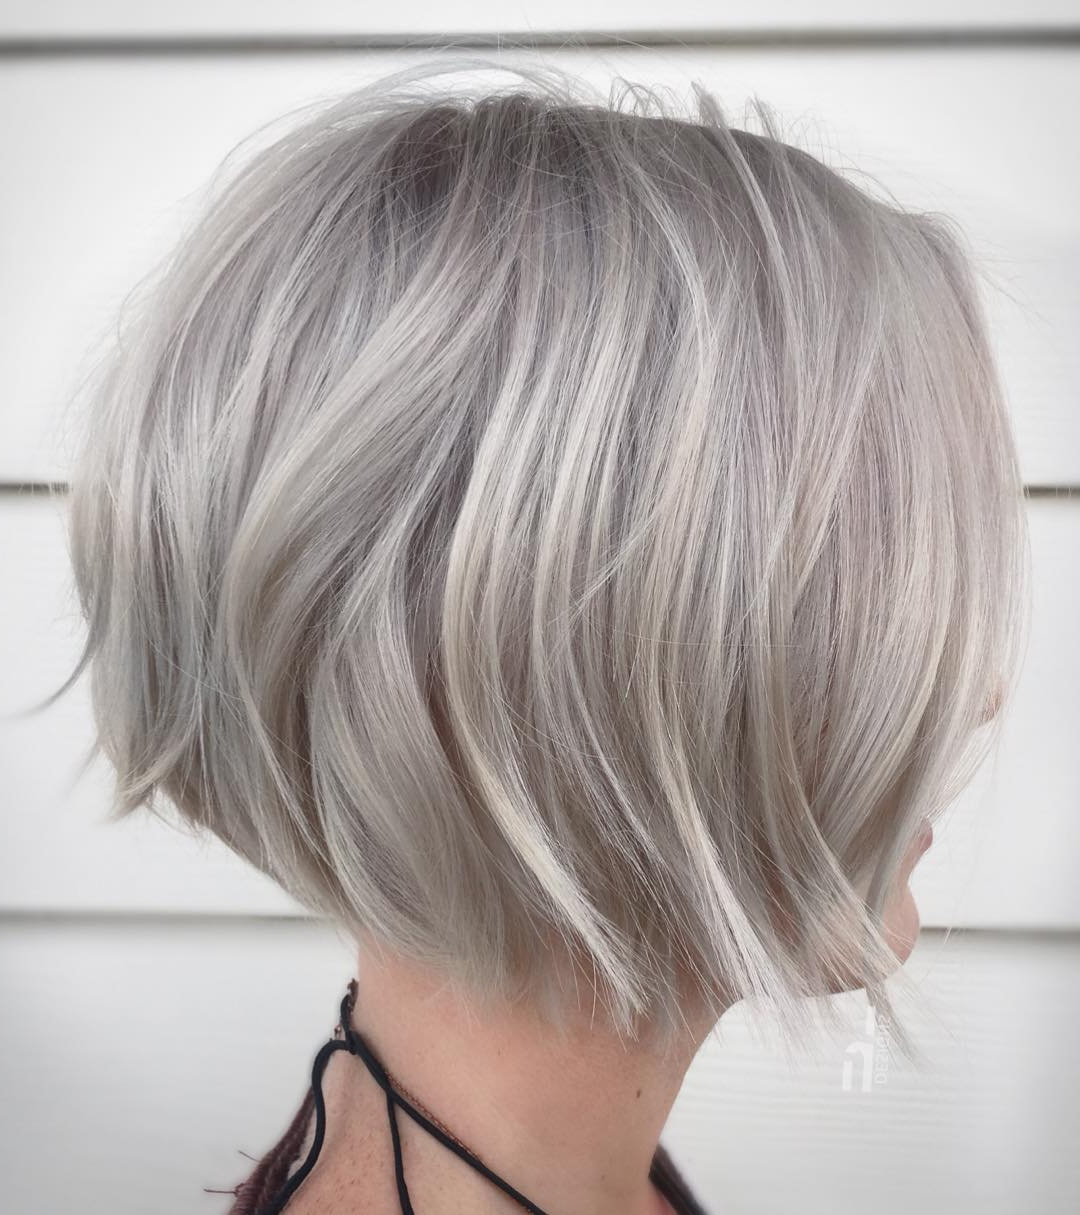 10 Stylish Medium Bob Haircuts For Women – Easy Care Chic Bob Hair 2019 With Sleek Gray Bob Hairstyles (View 2 of 20)